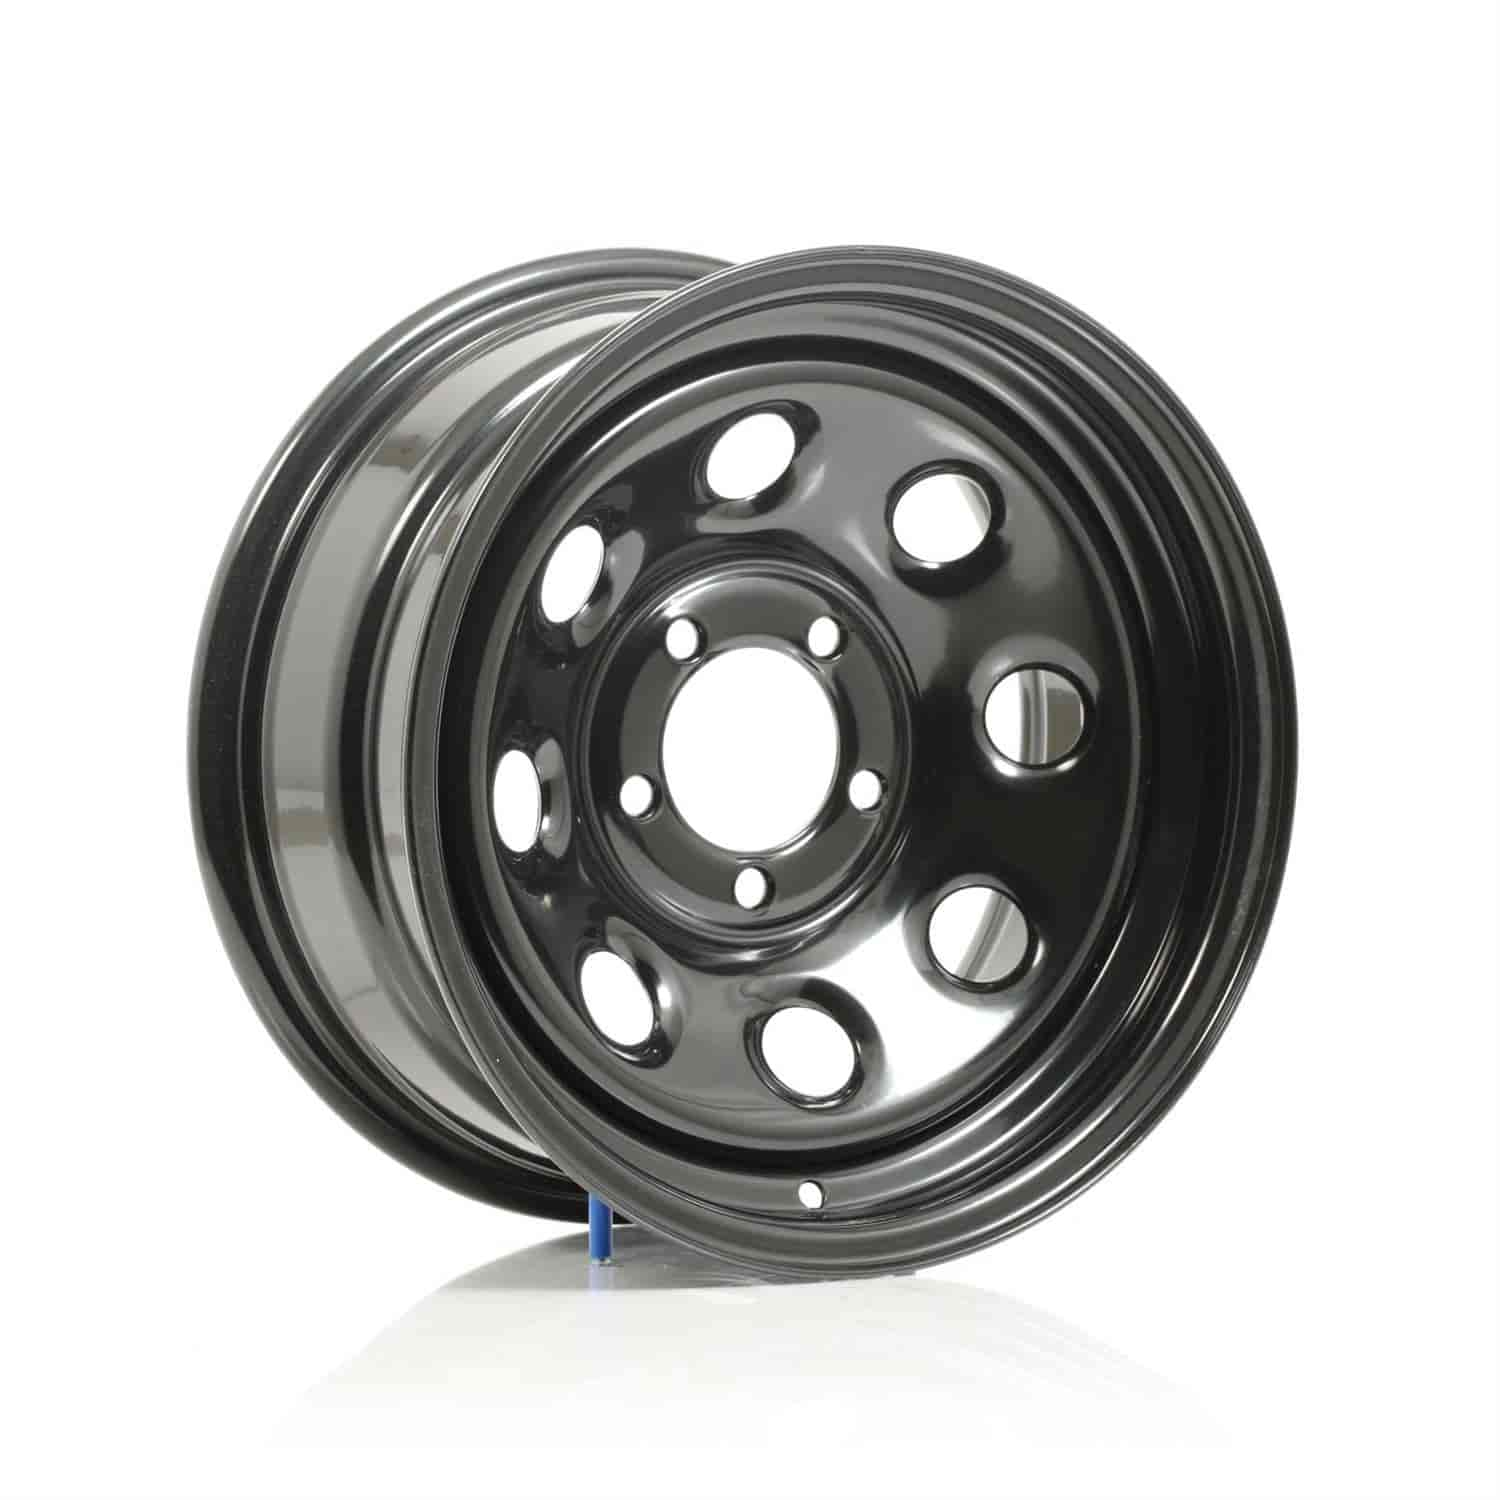 Cragar 3975855 - Cragar Black Soft 8 Wheels